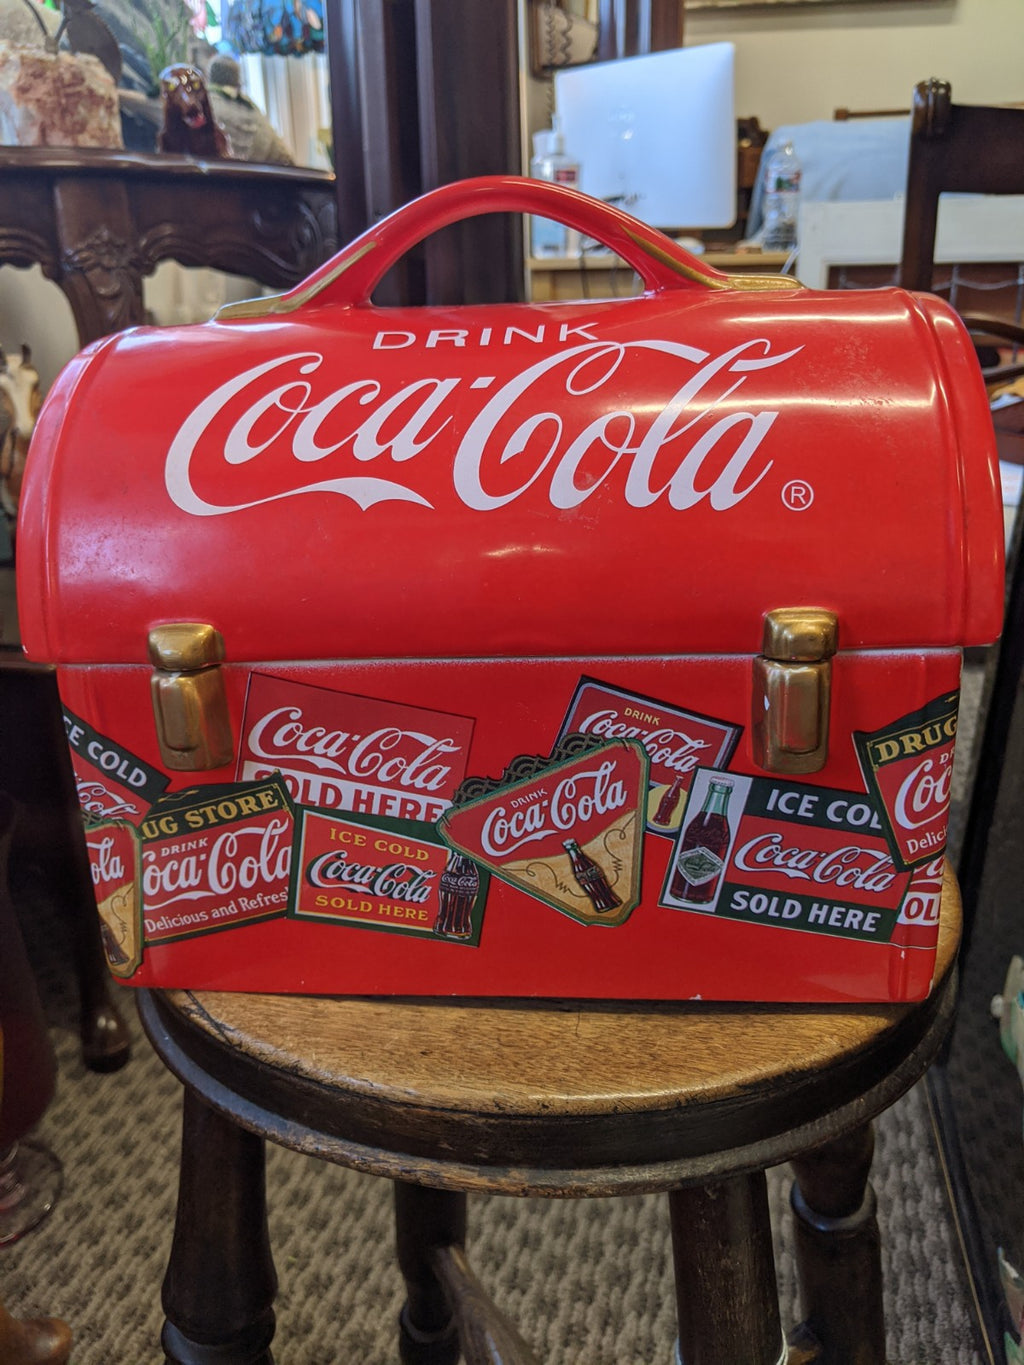 Coca-Cola cookie jar by Gibson